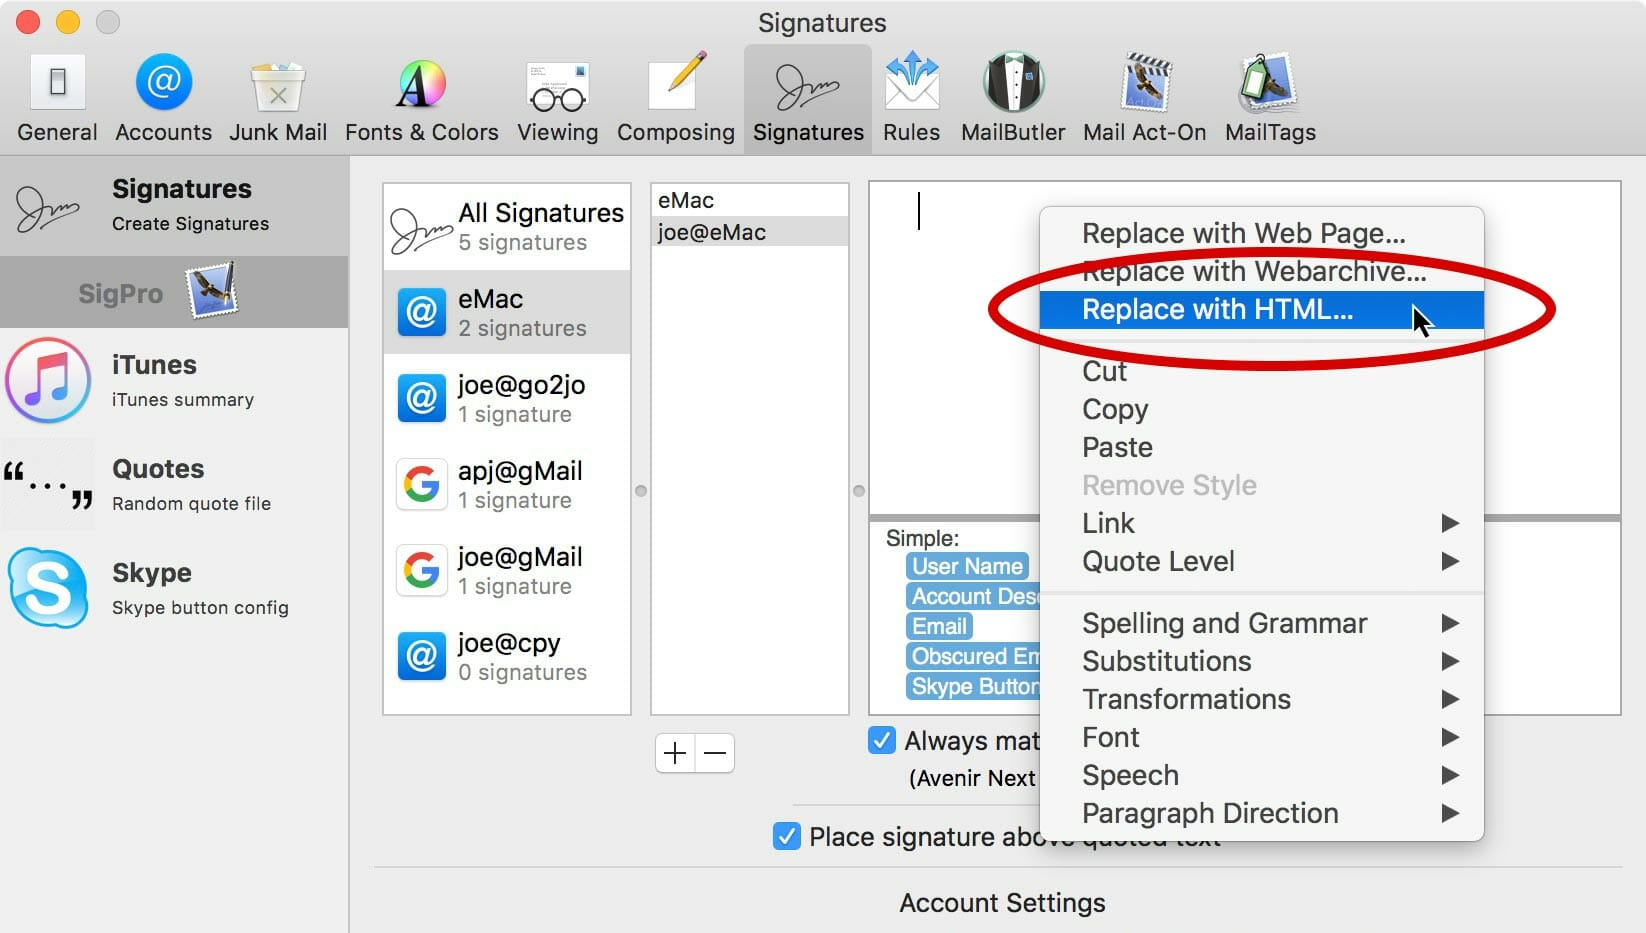 Control click in the signature field & select